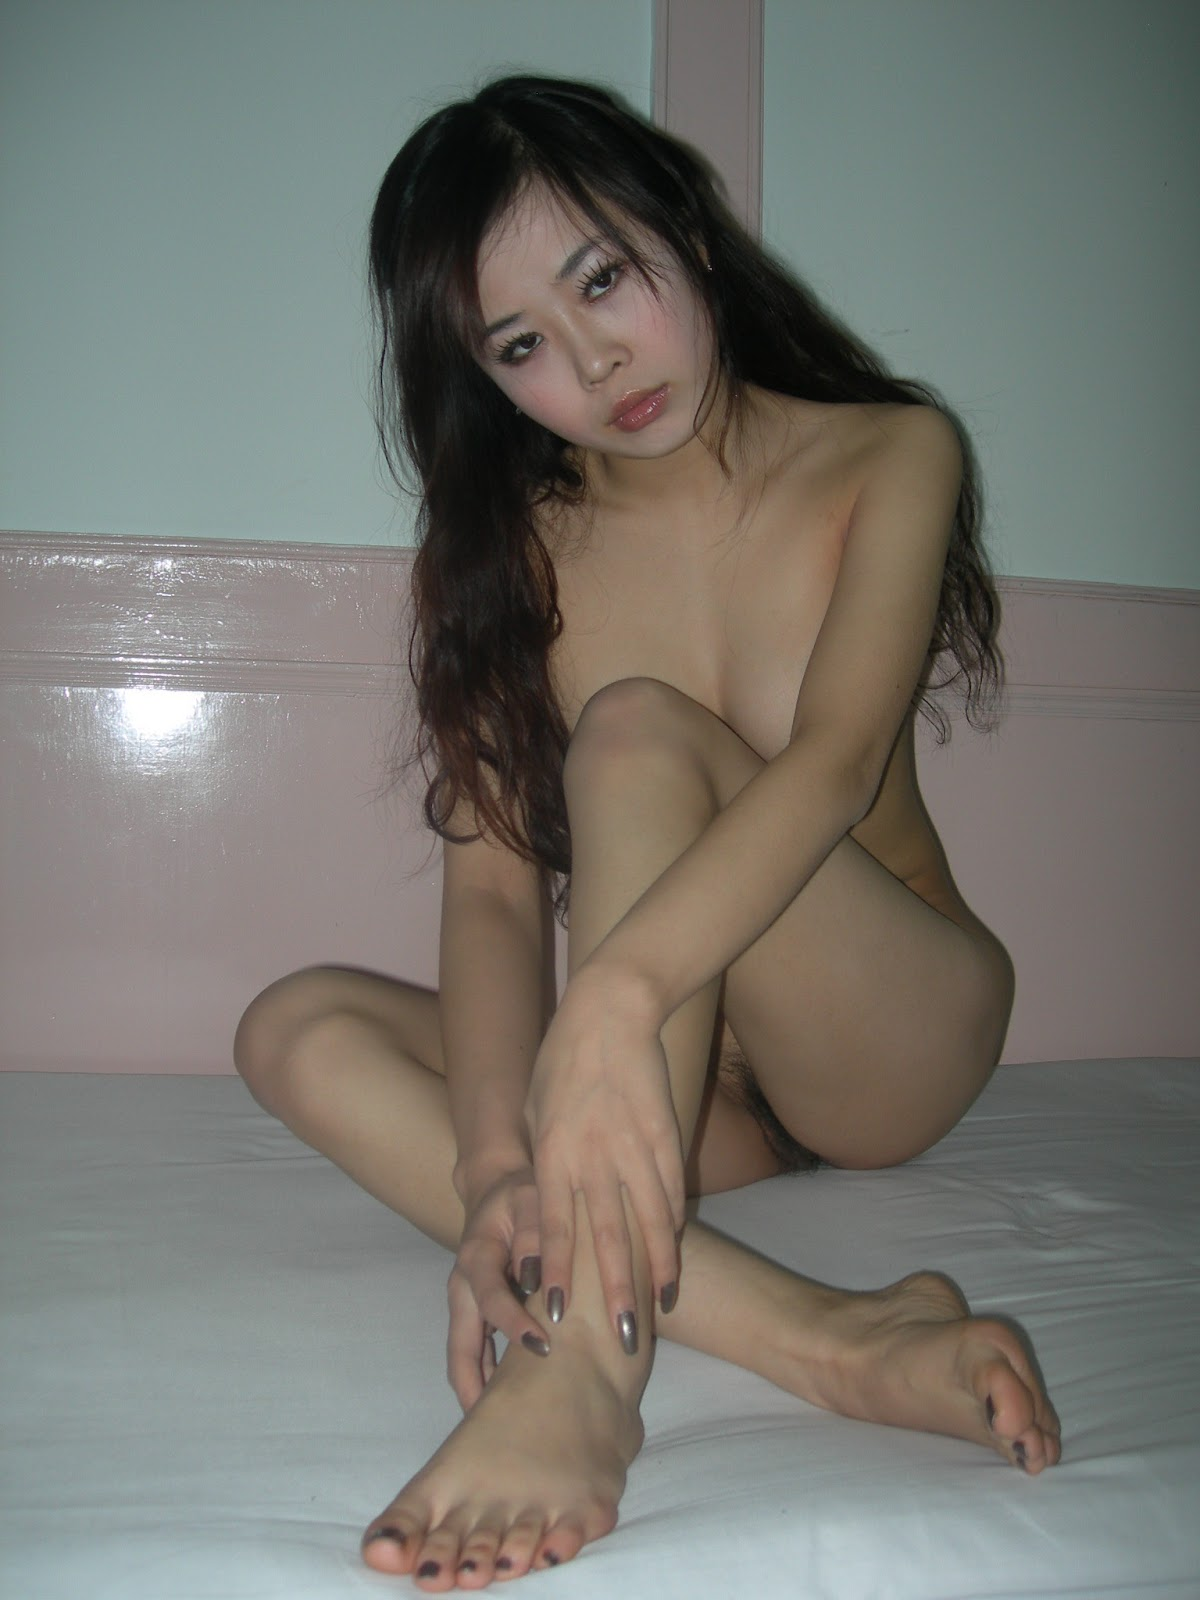 This excellent nude amateur taiwan girl